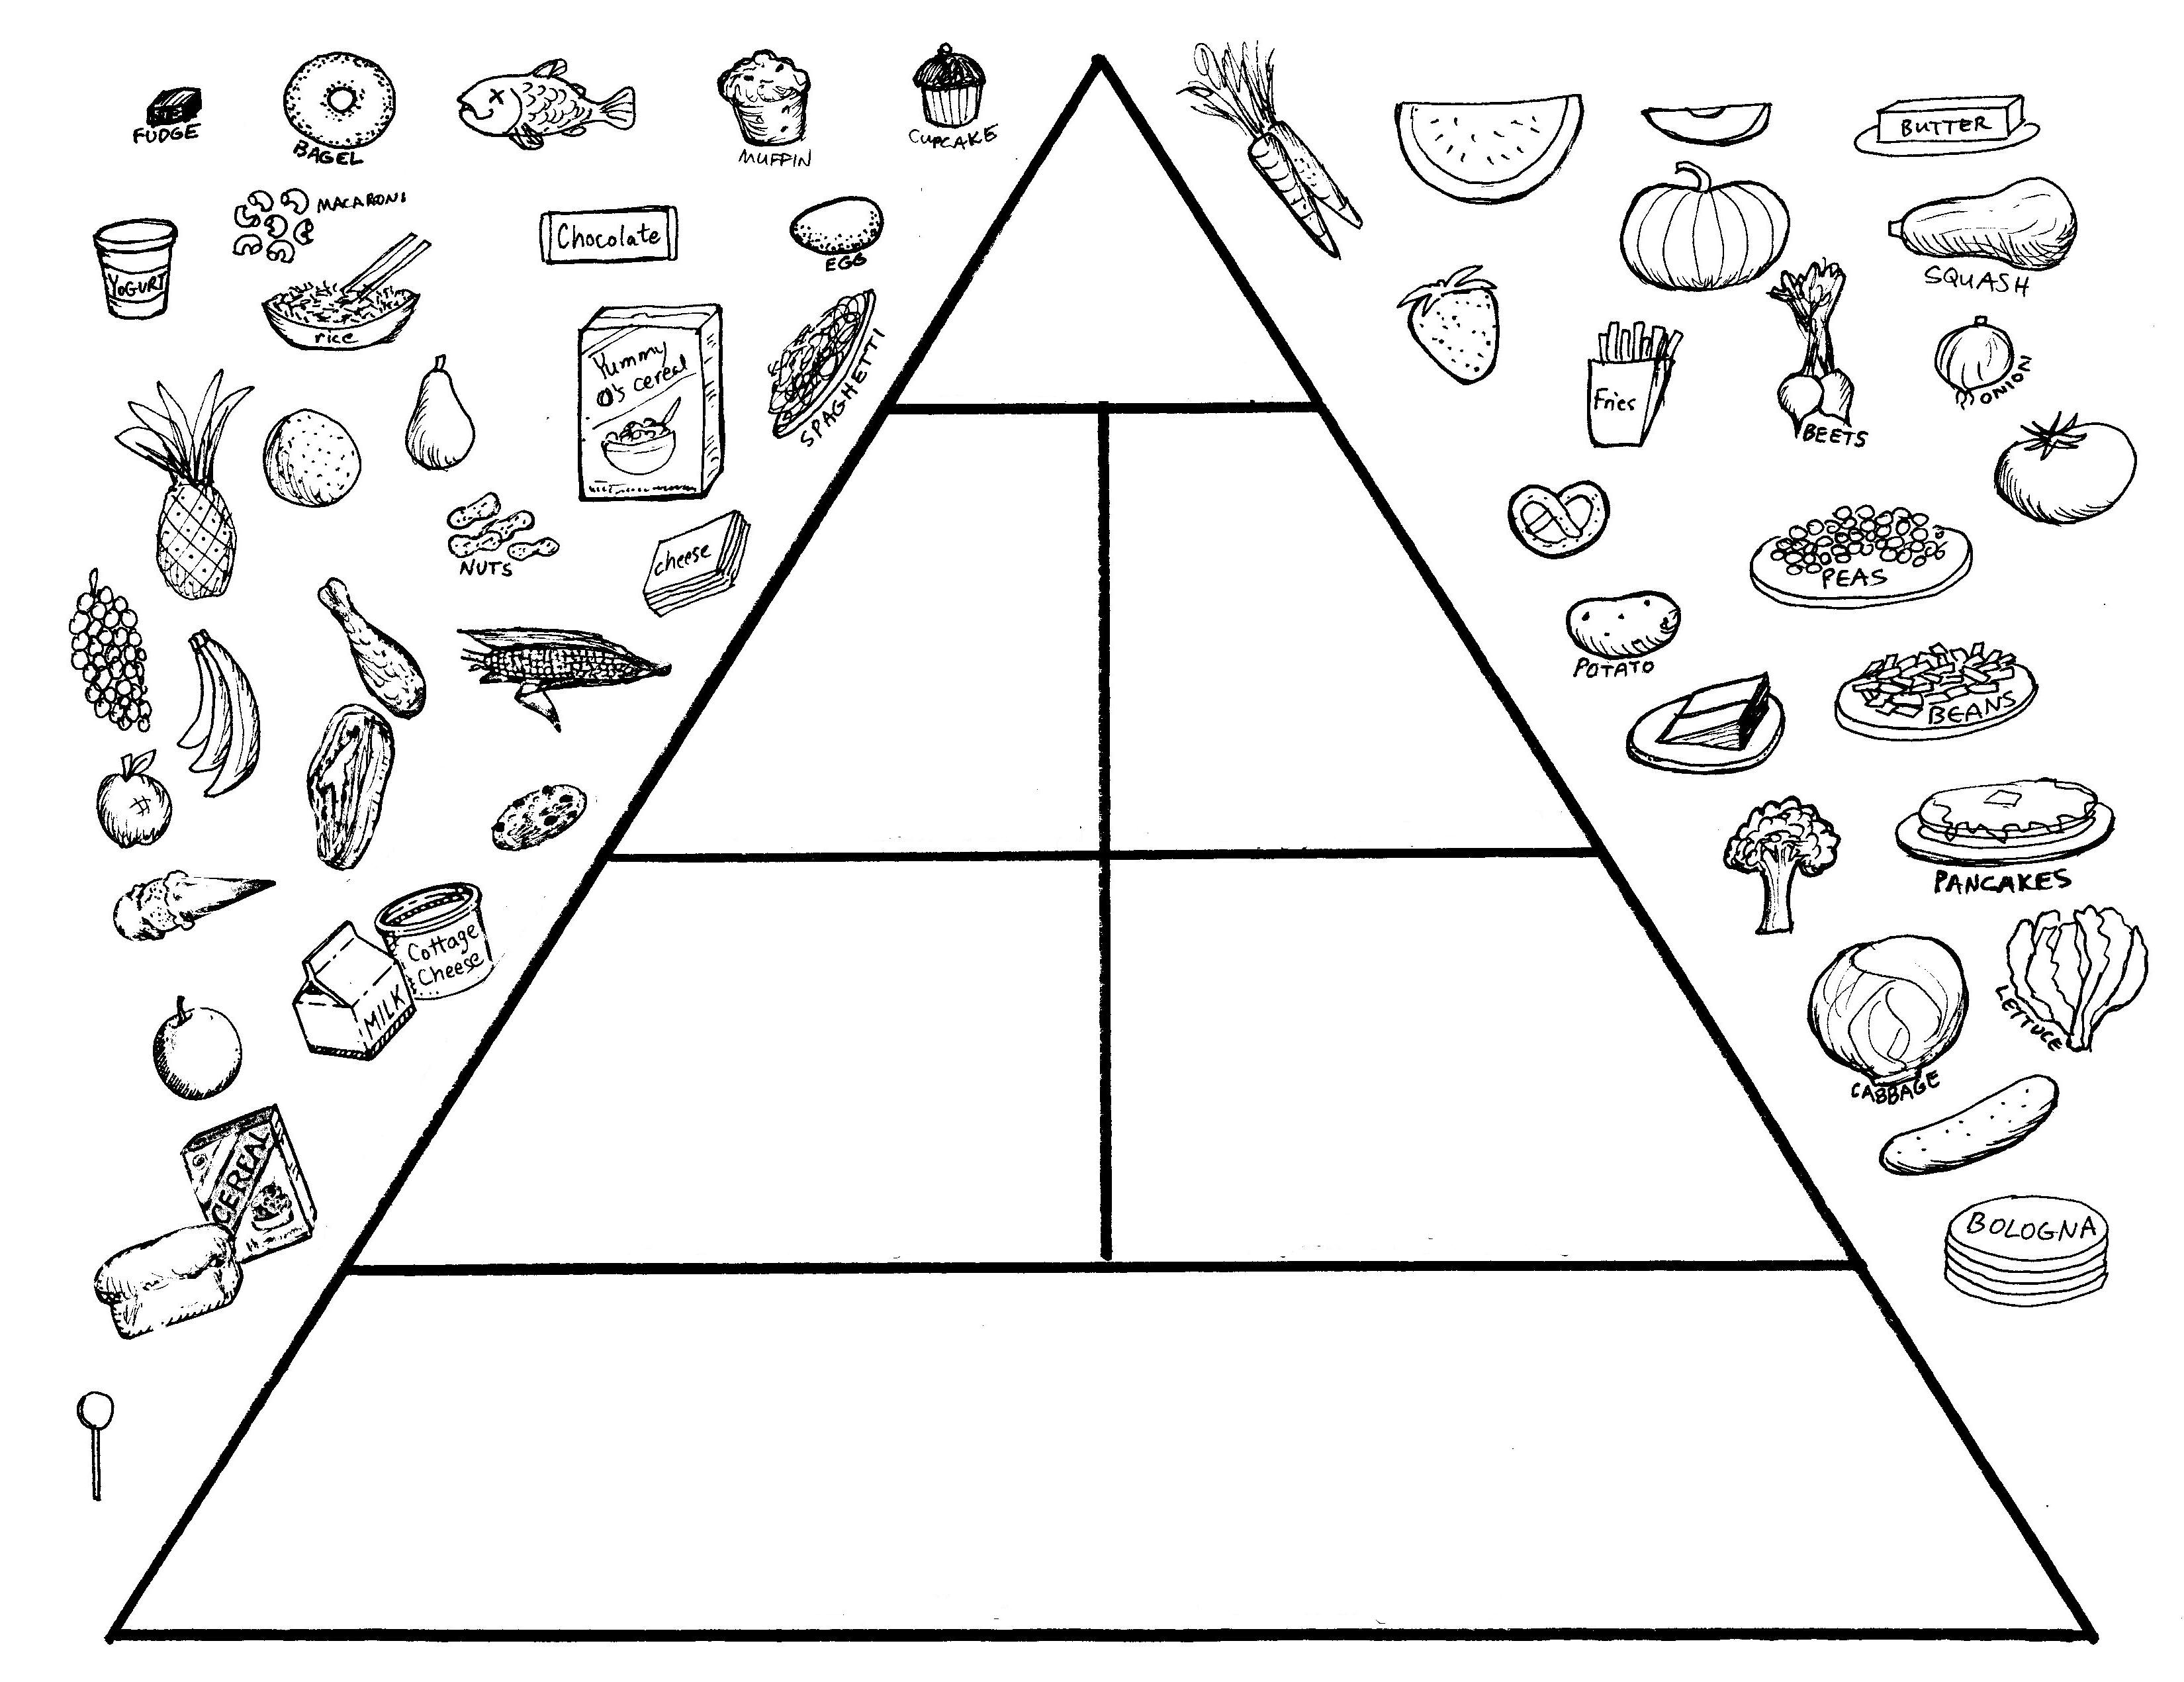 4 Images of Food Pyramid Sorting Printable